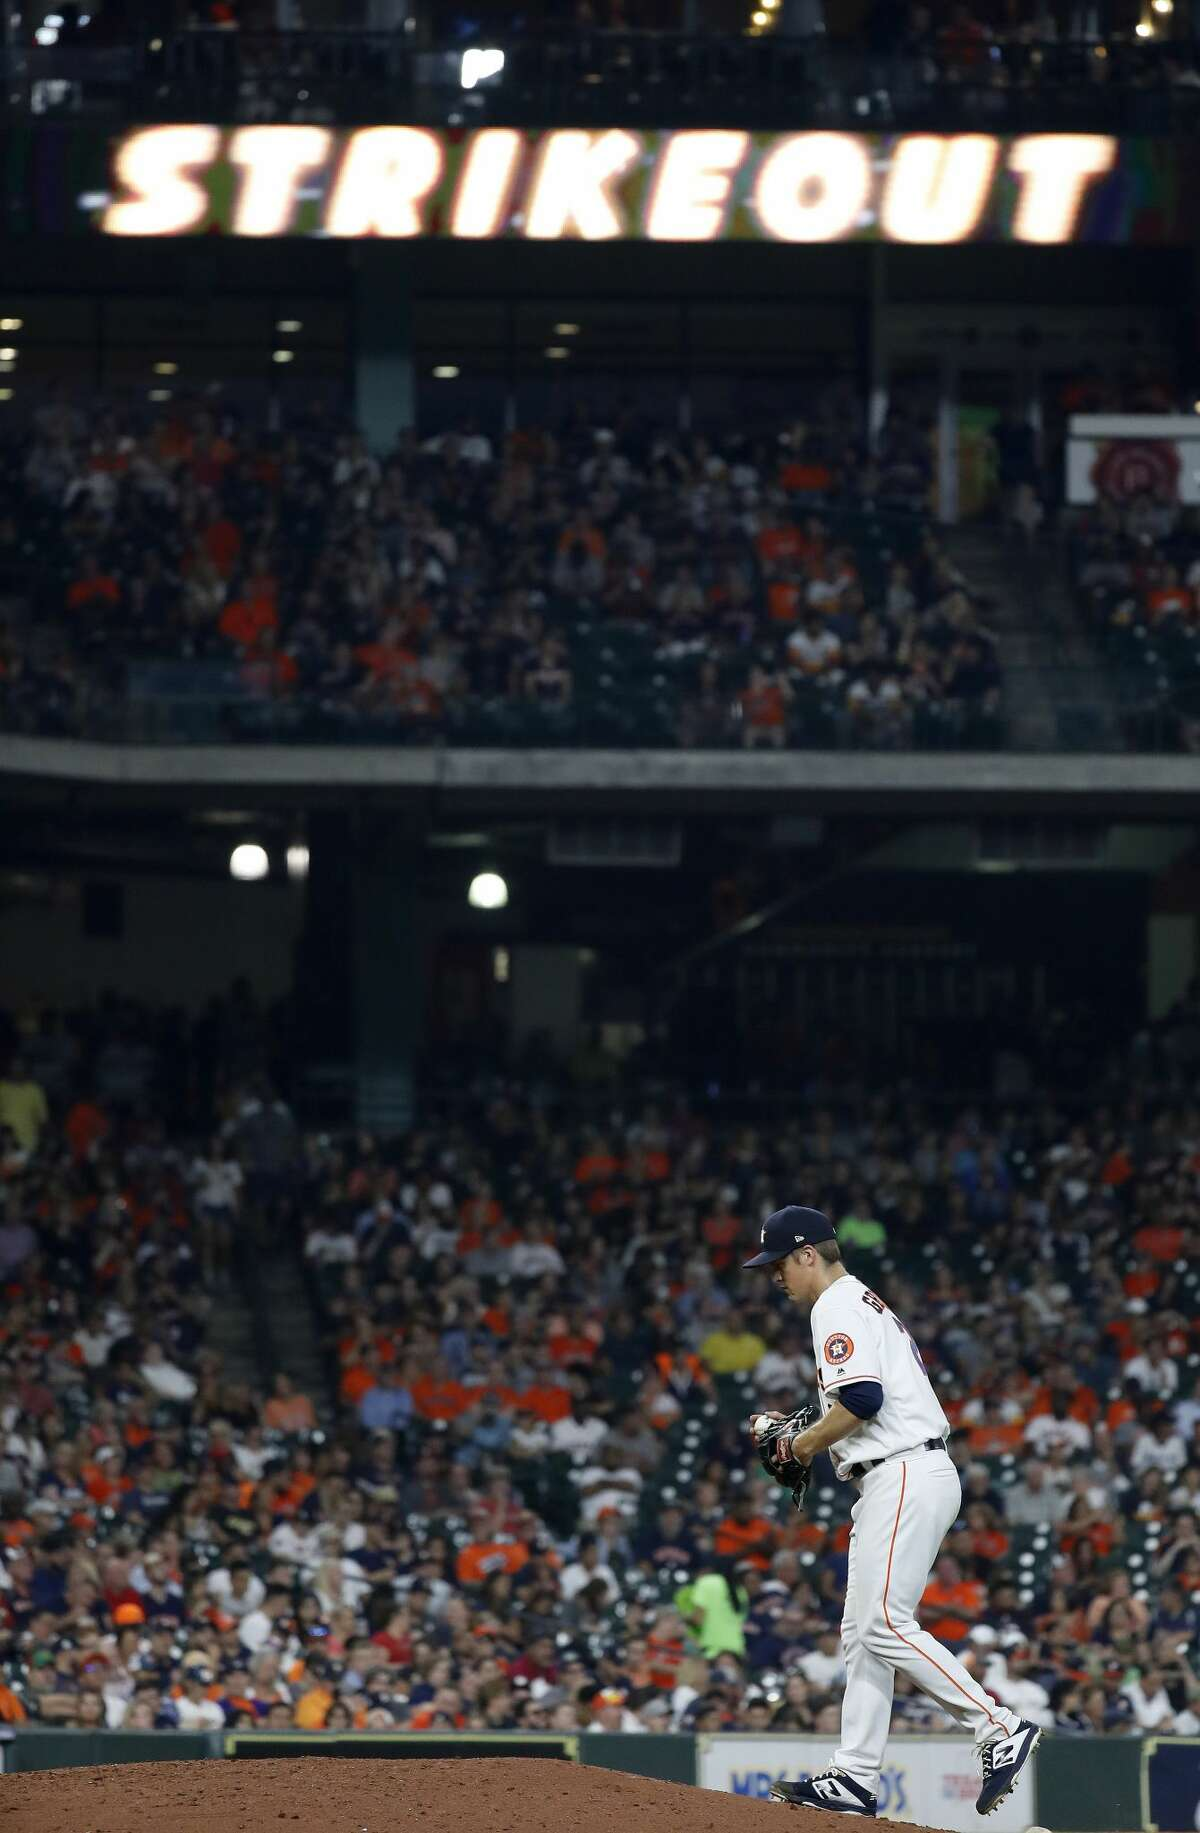 Houston Astros starting pitcher Zack Greinke (21) after striking out Oakland Athletics Franklin Barreto during the sixth inning of an MLB baseball game at Minute Maid Park, Monday, Sept. 9, 2019, in Houston.